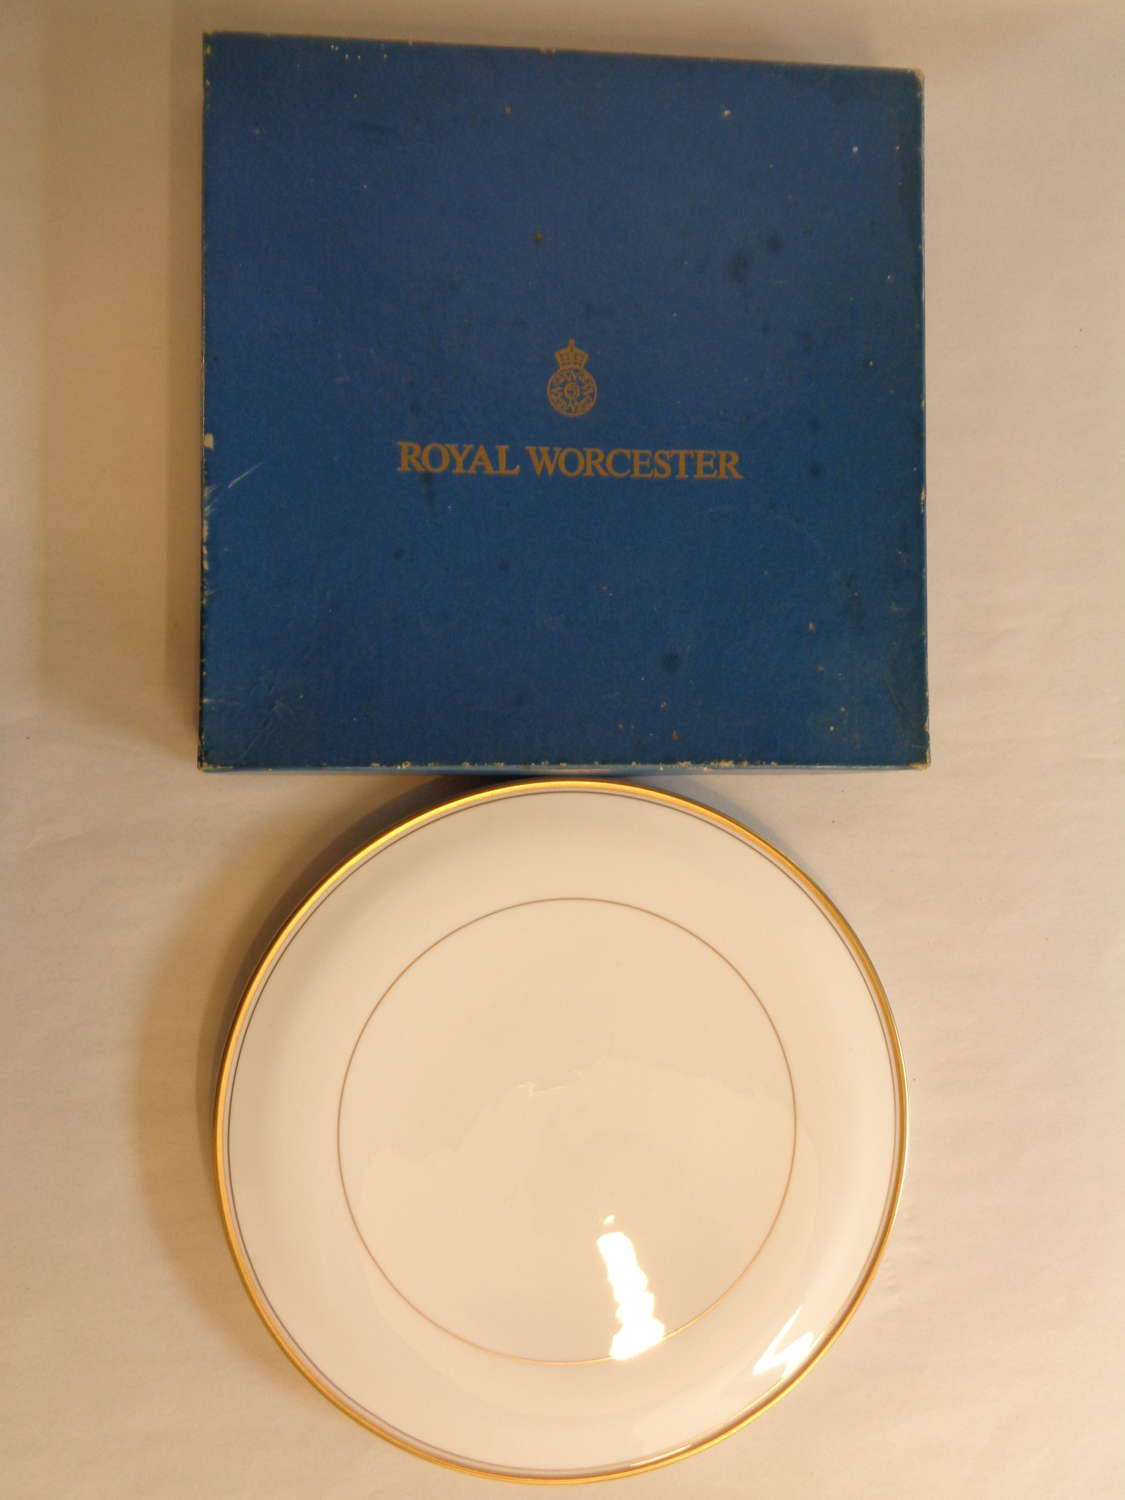 Royal Worcester 'Viceroy' Cake Plate